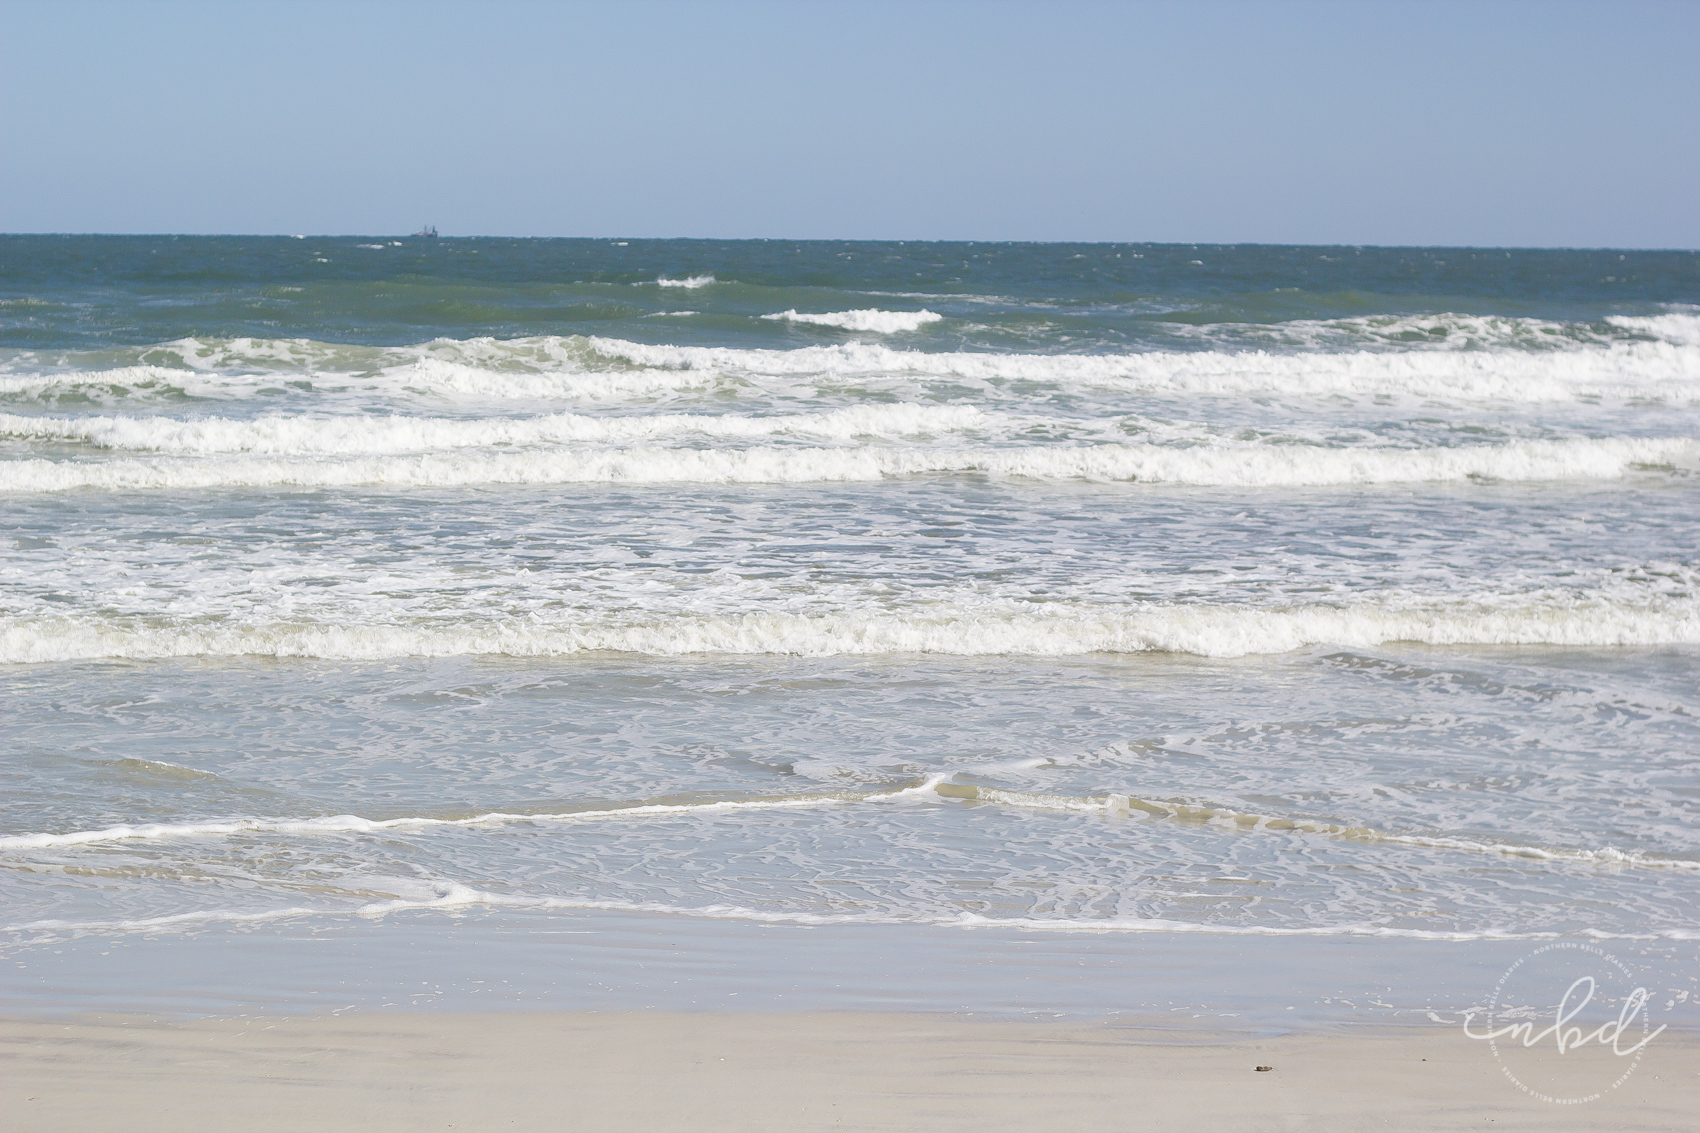 ocean waves at Daytona Beach